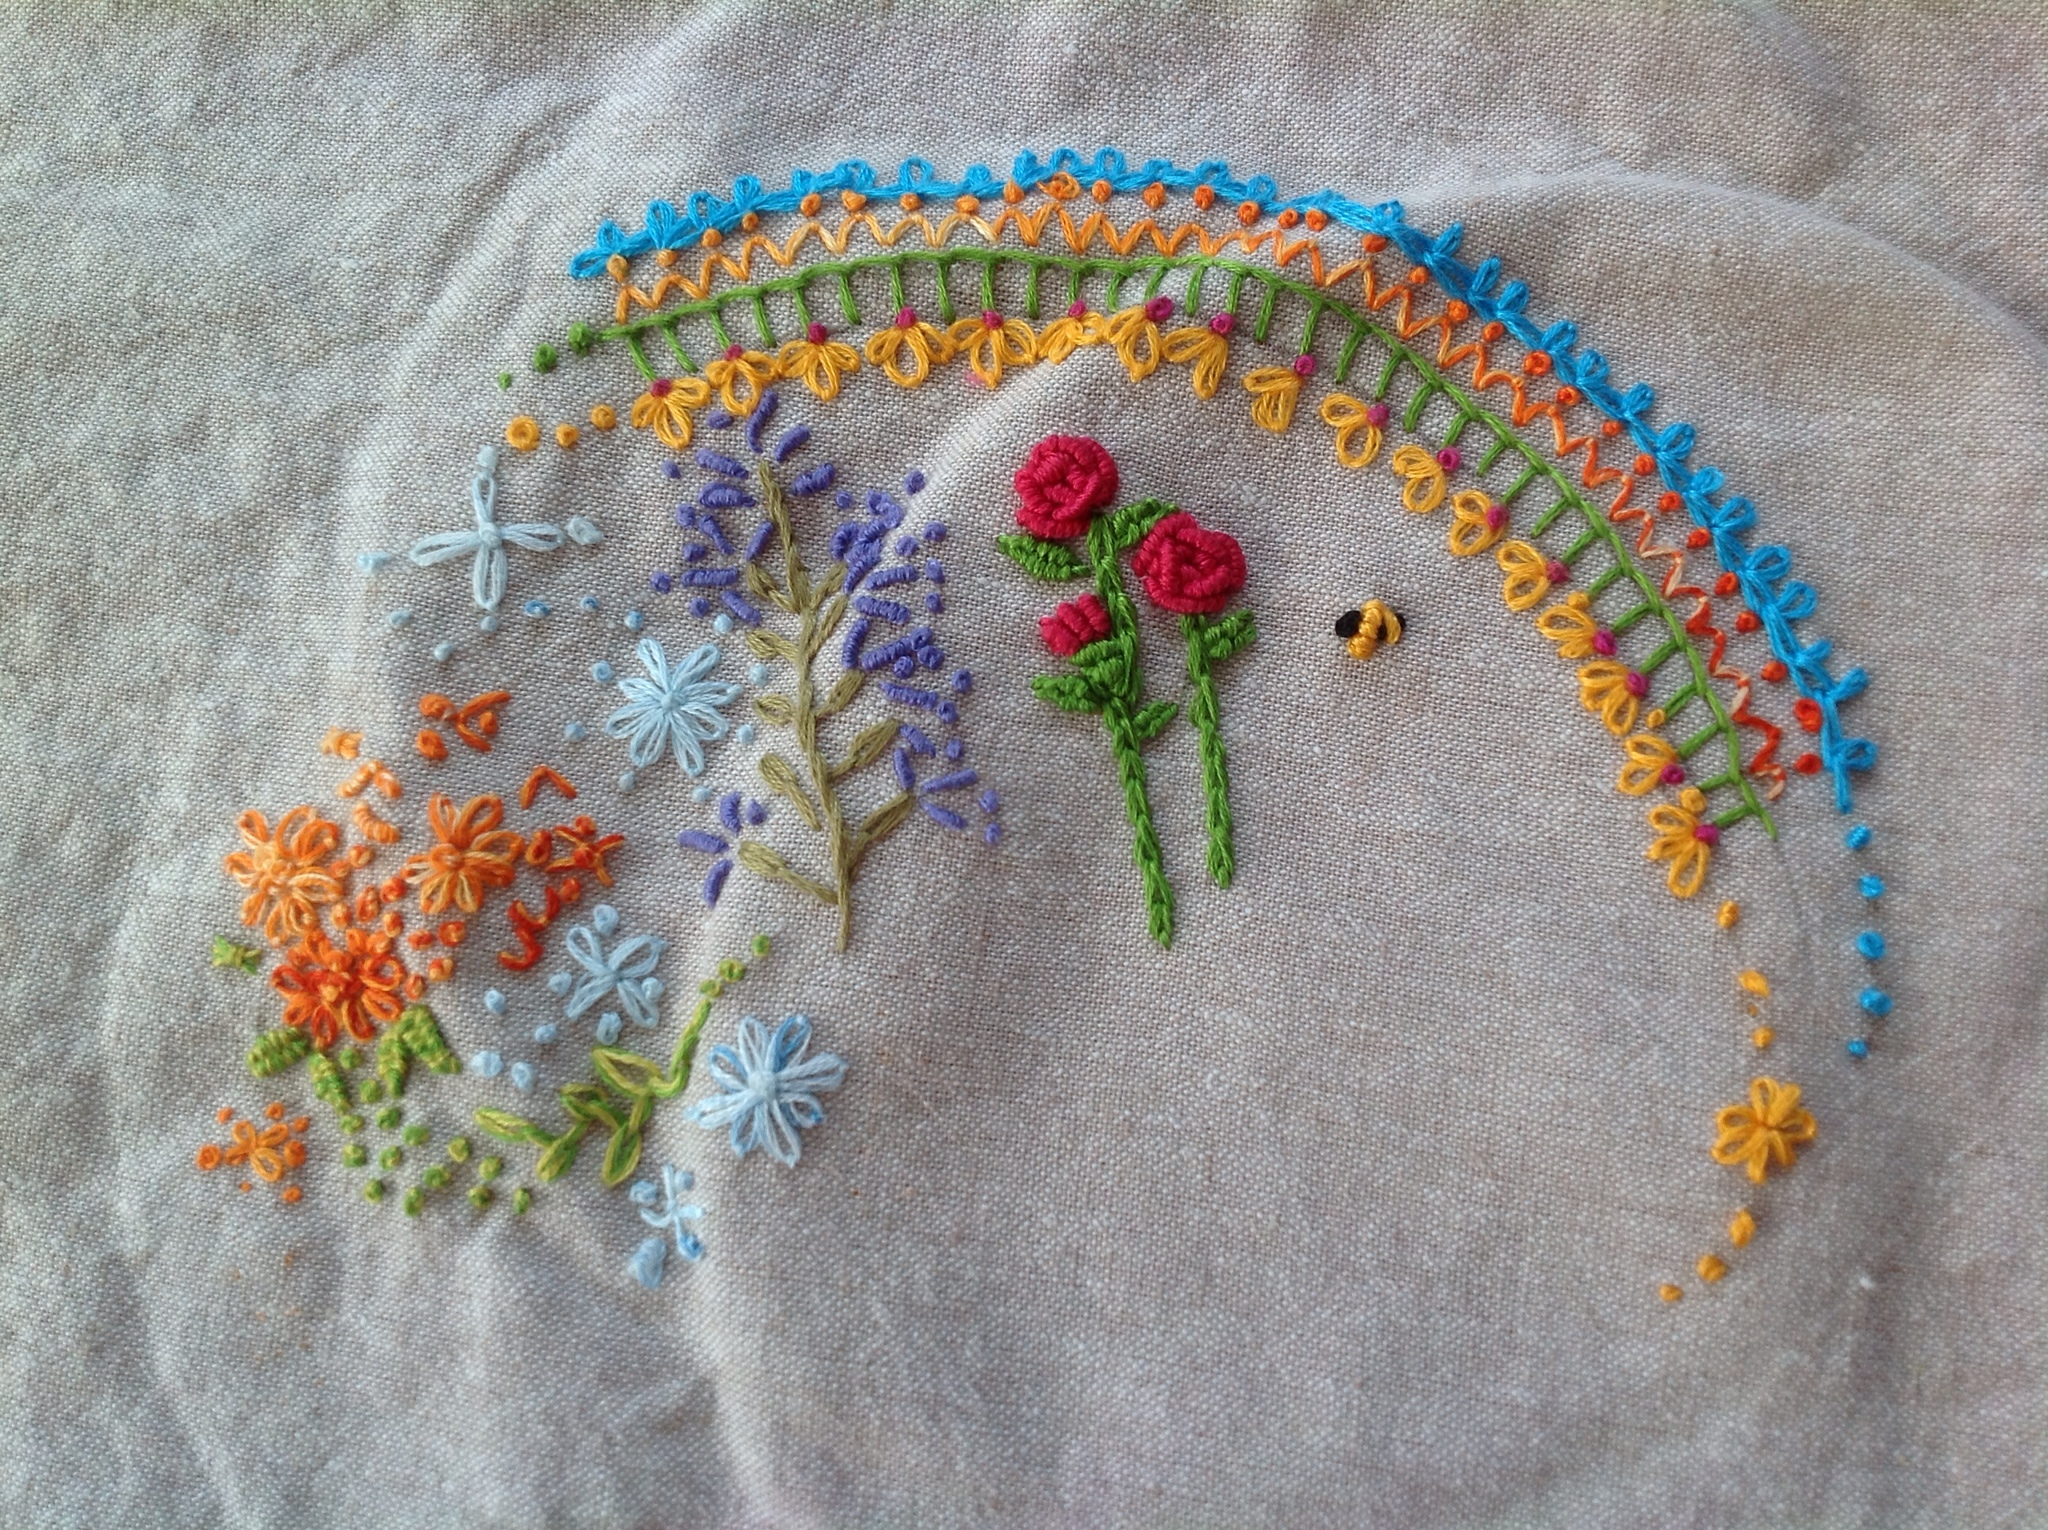 bending pins embroidered garden - Embroidery Garden